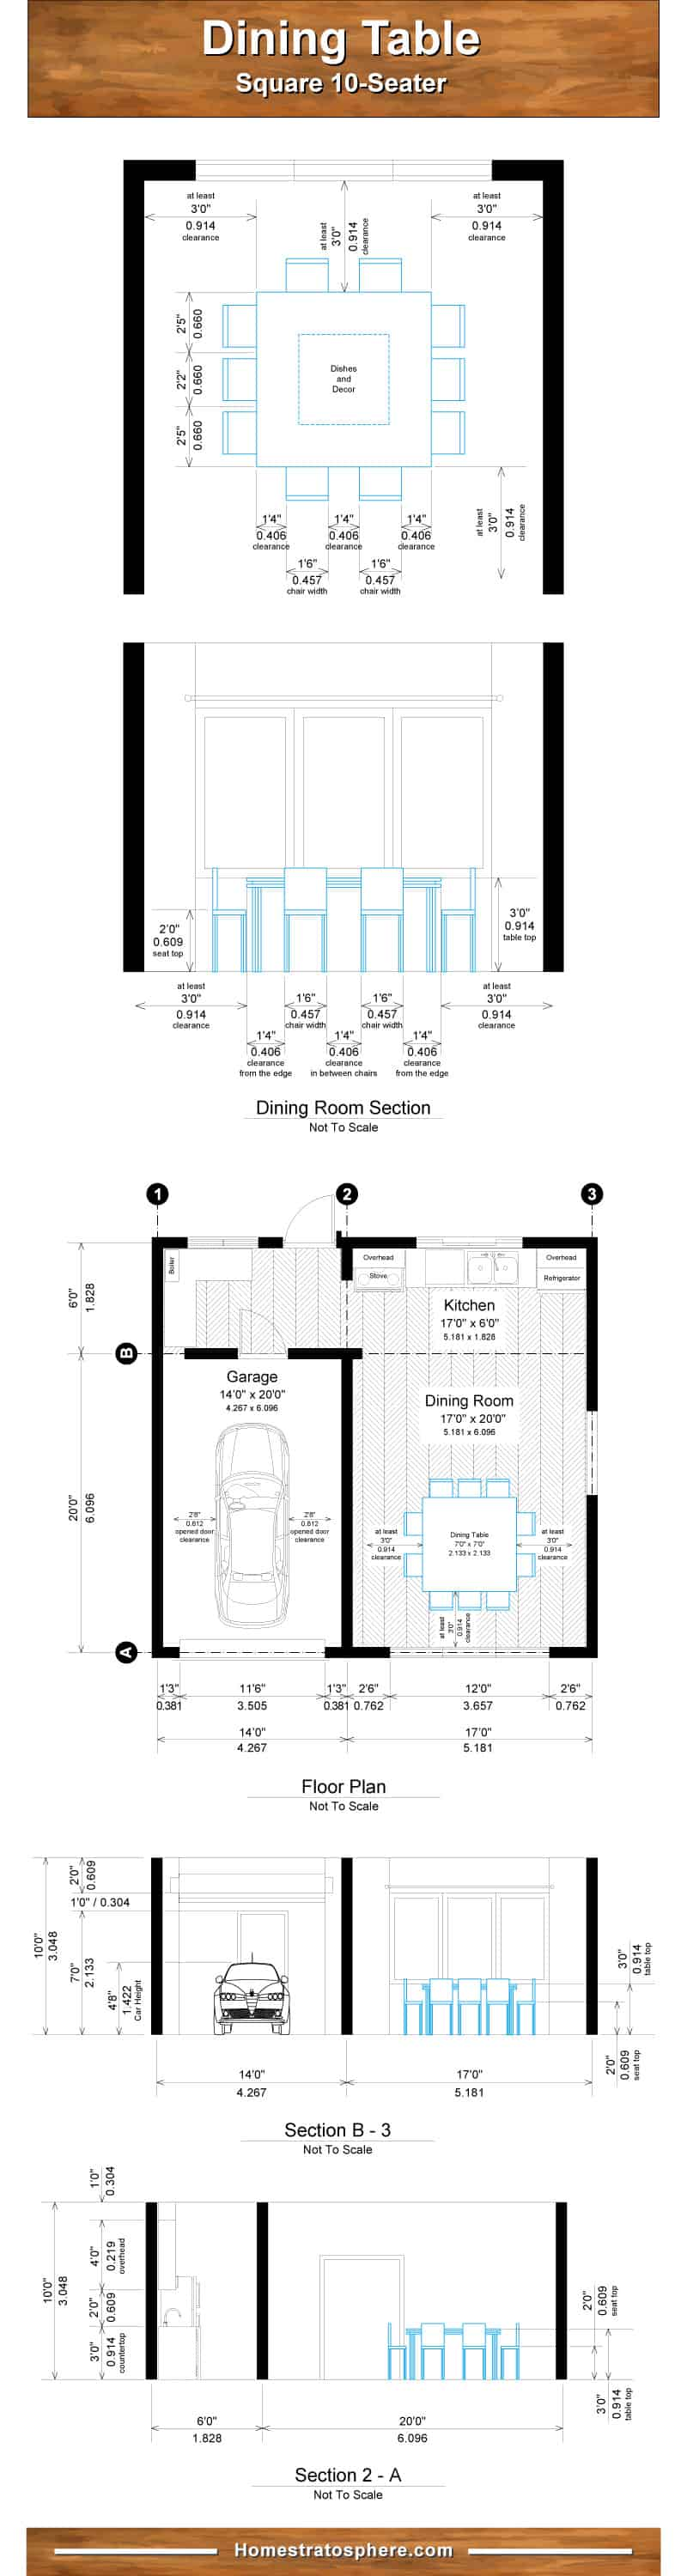 Square dining table dimensions chart for 10 people